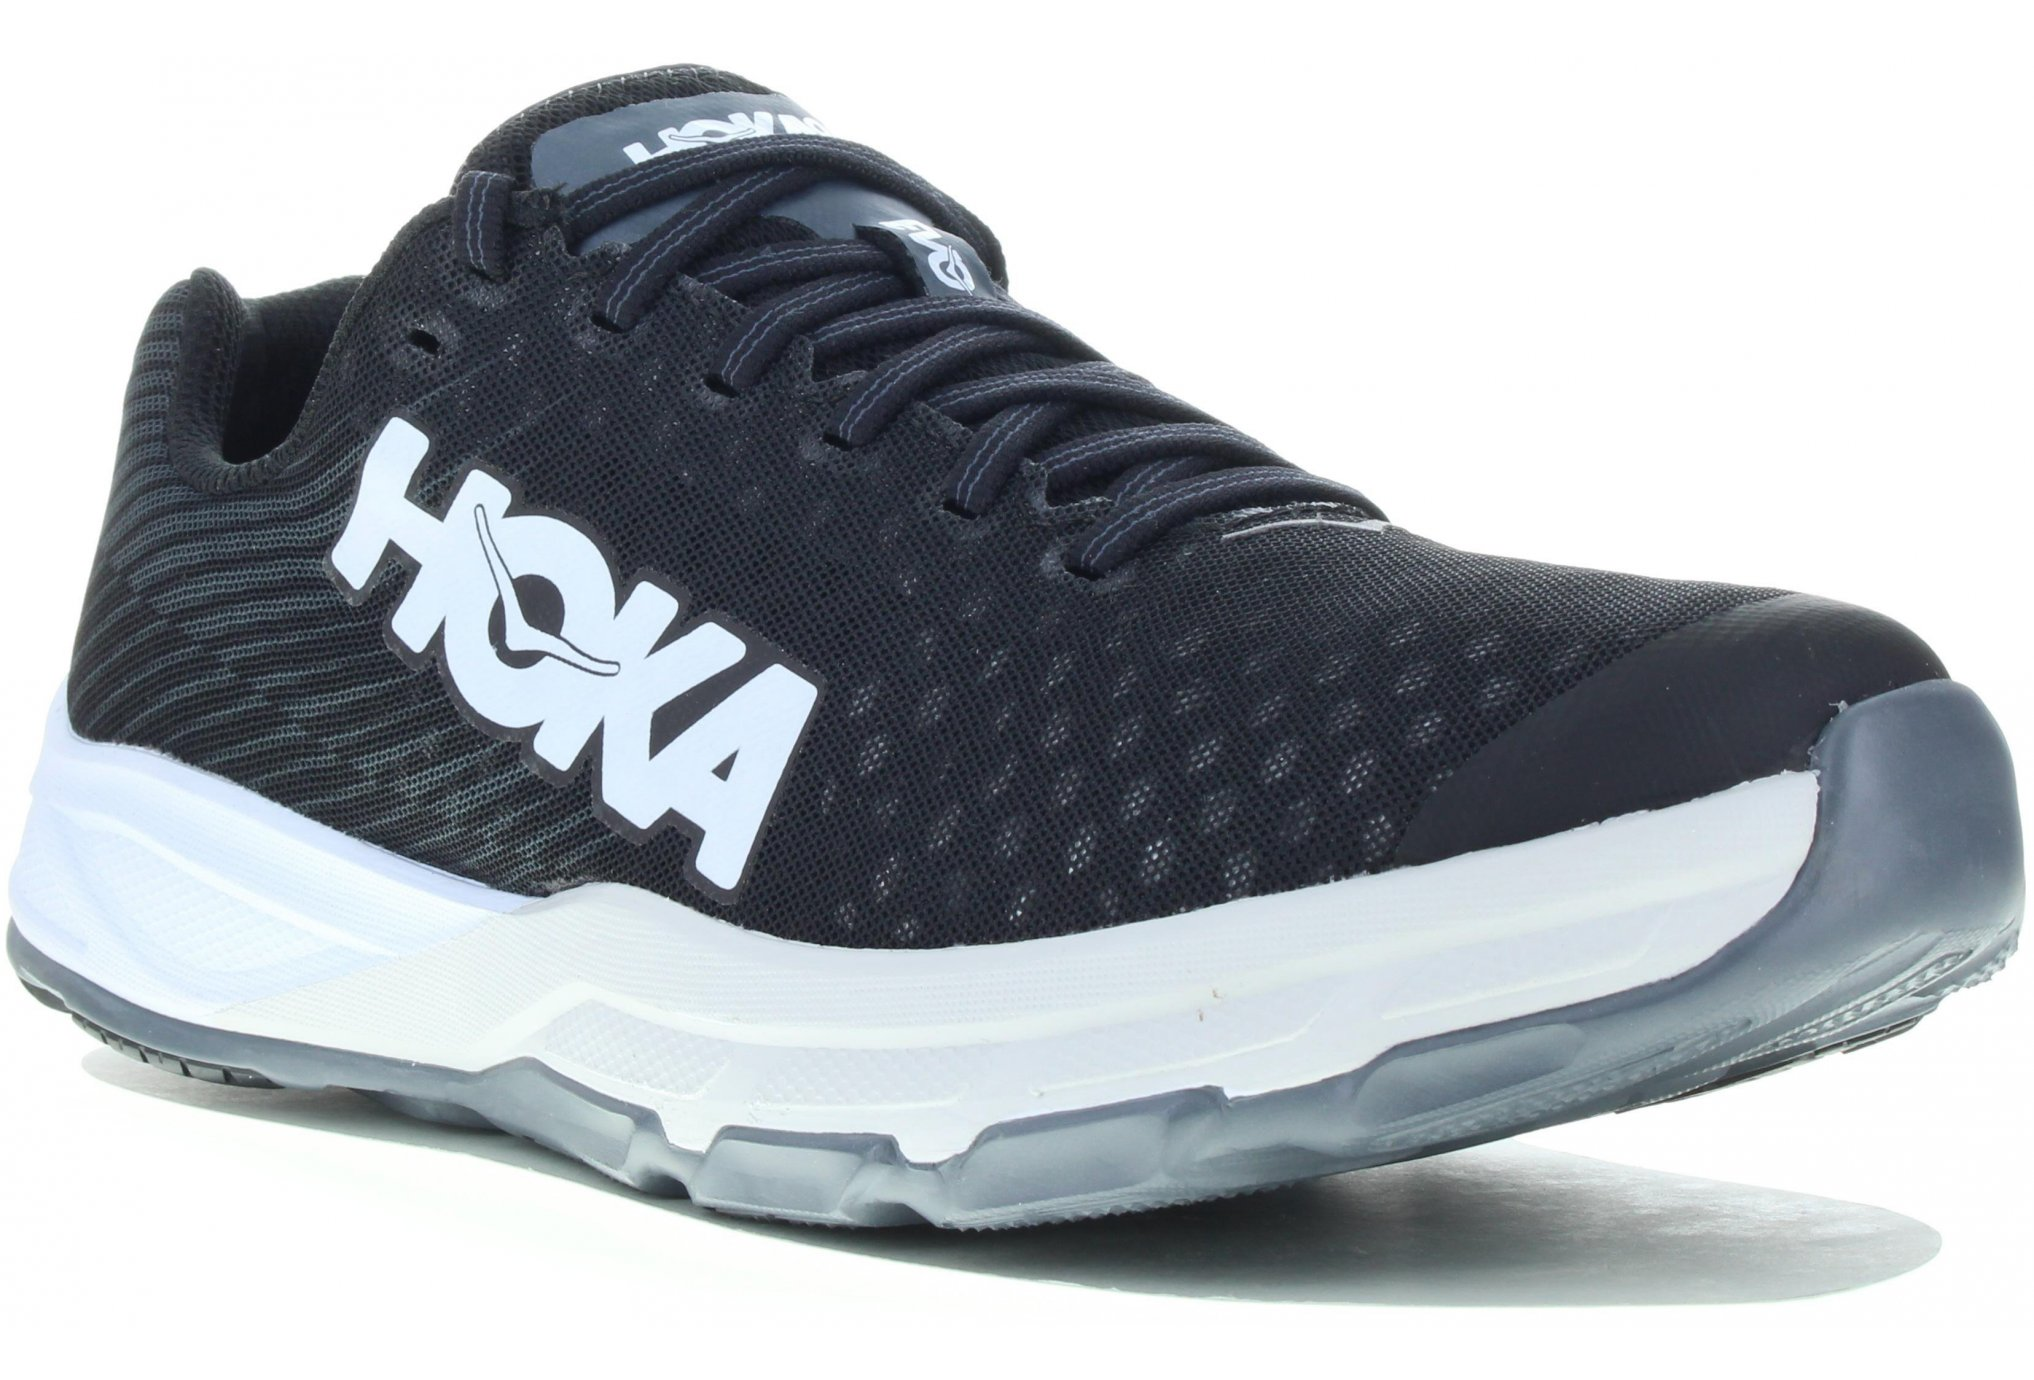 Hoka One One Evo Carbon Rocket + M Chaussures homme